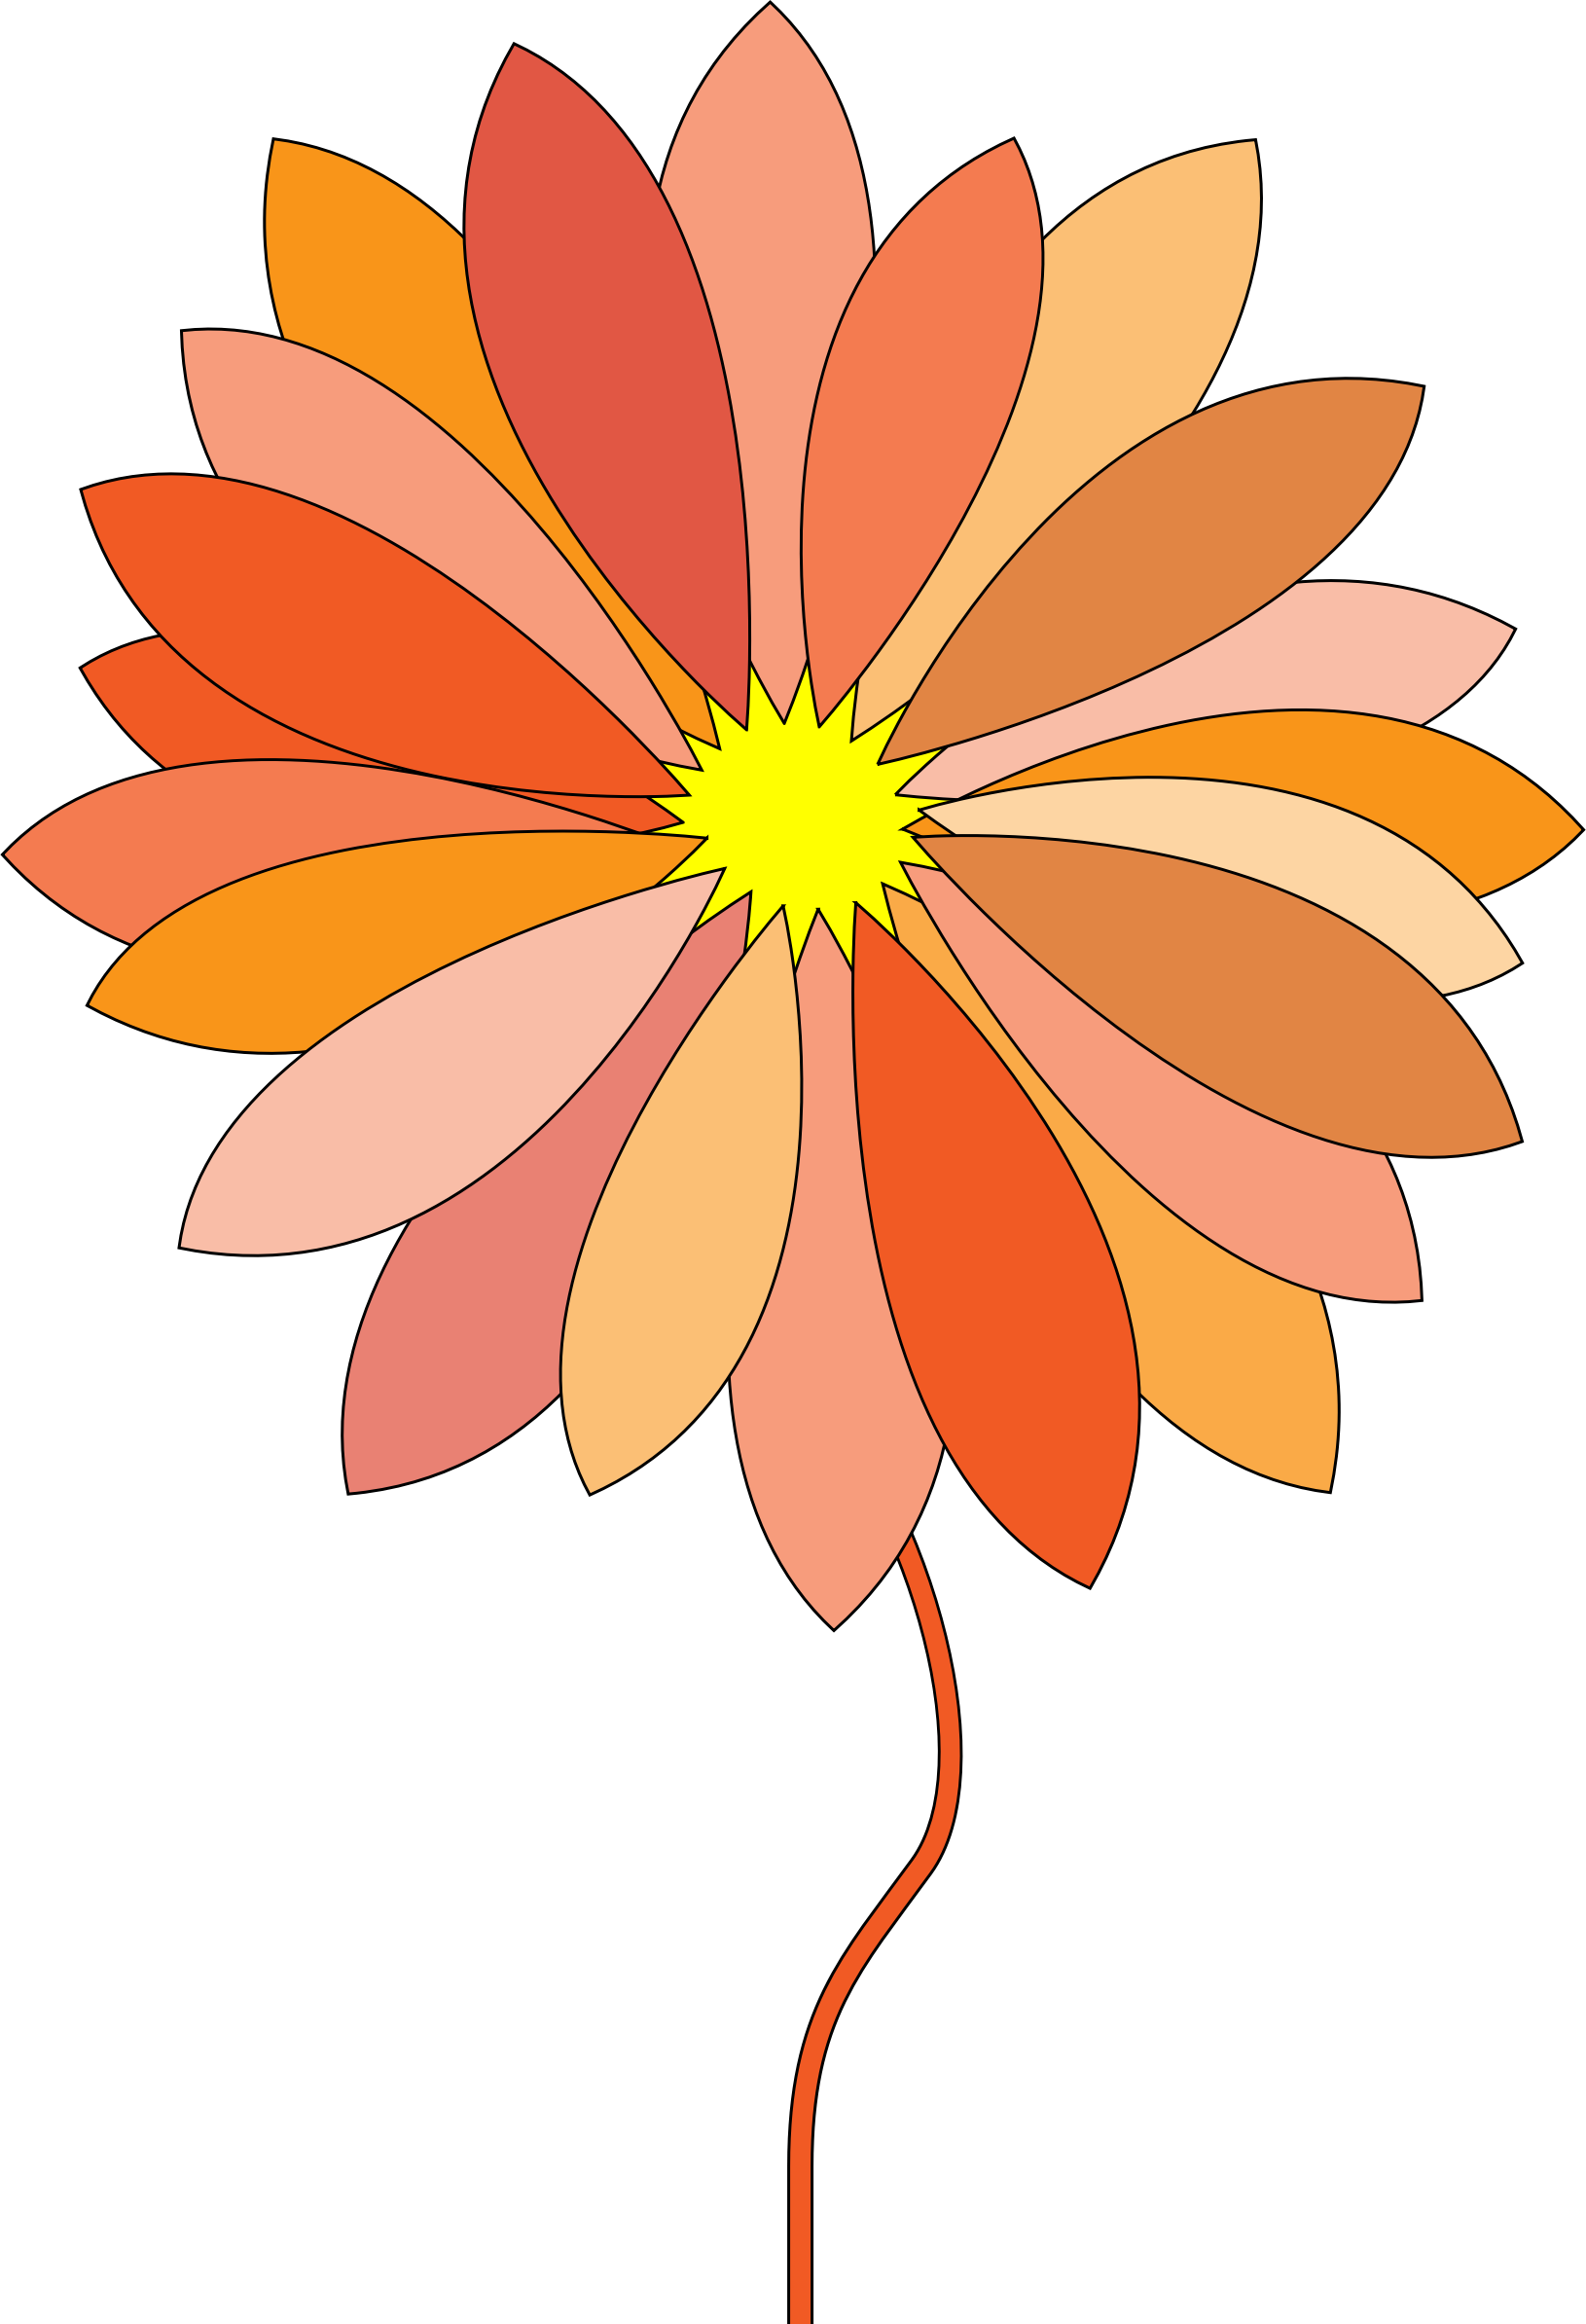 Flower png cartoon. Icons free and downloads